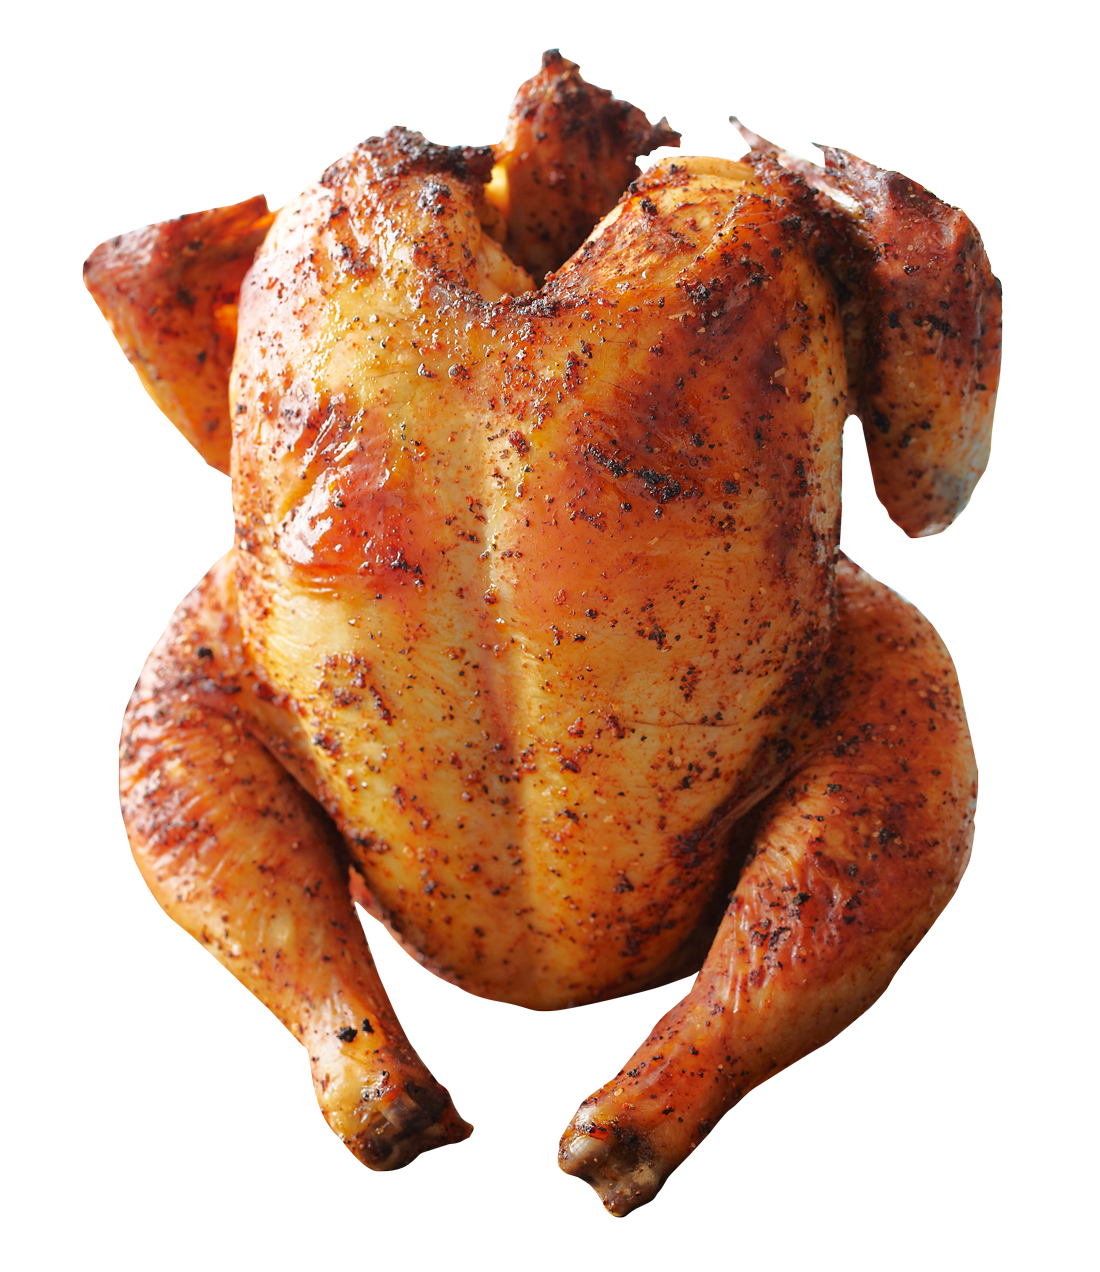 Grilled Chicken Png & Free Grilled Chicken.png Transparent Images.